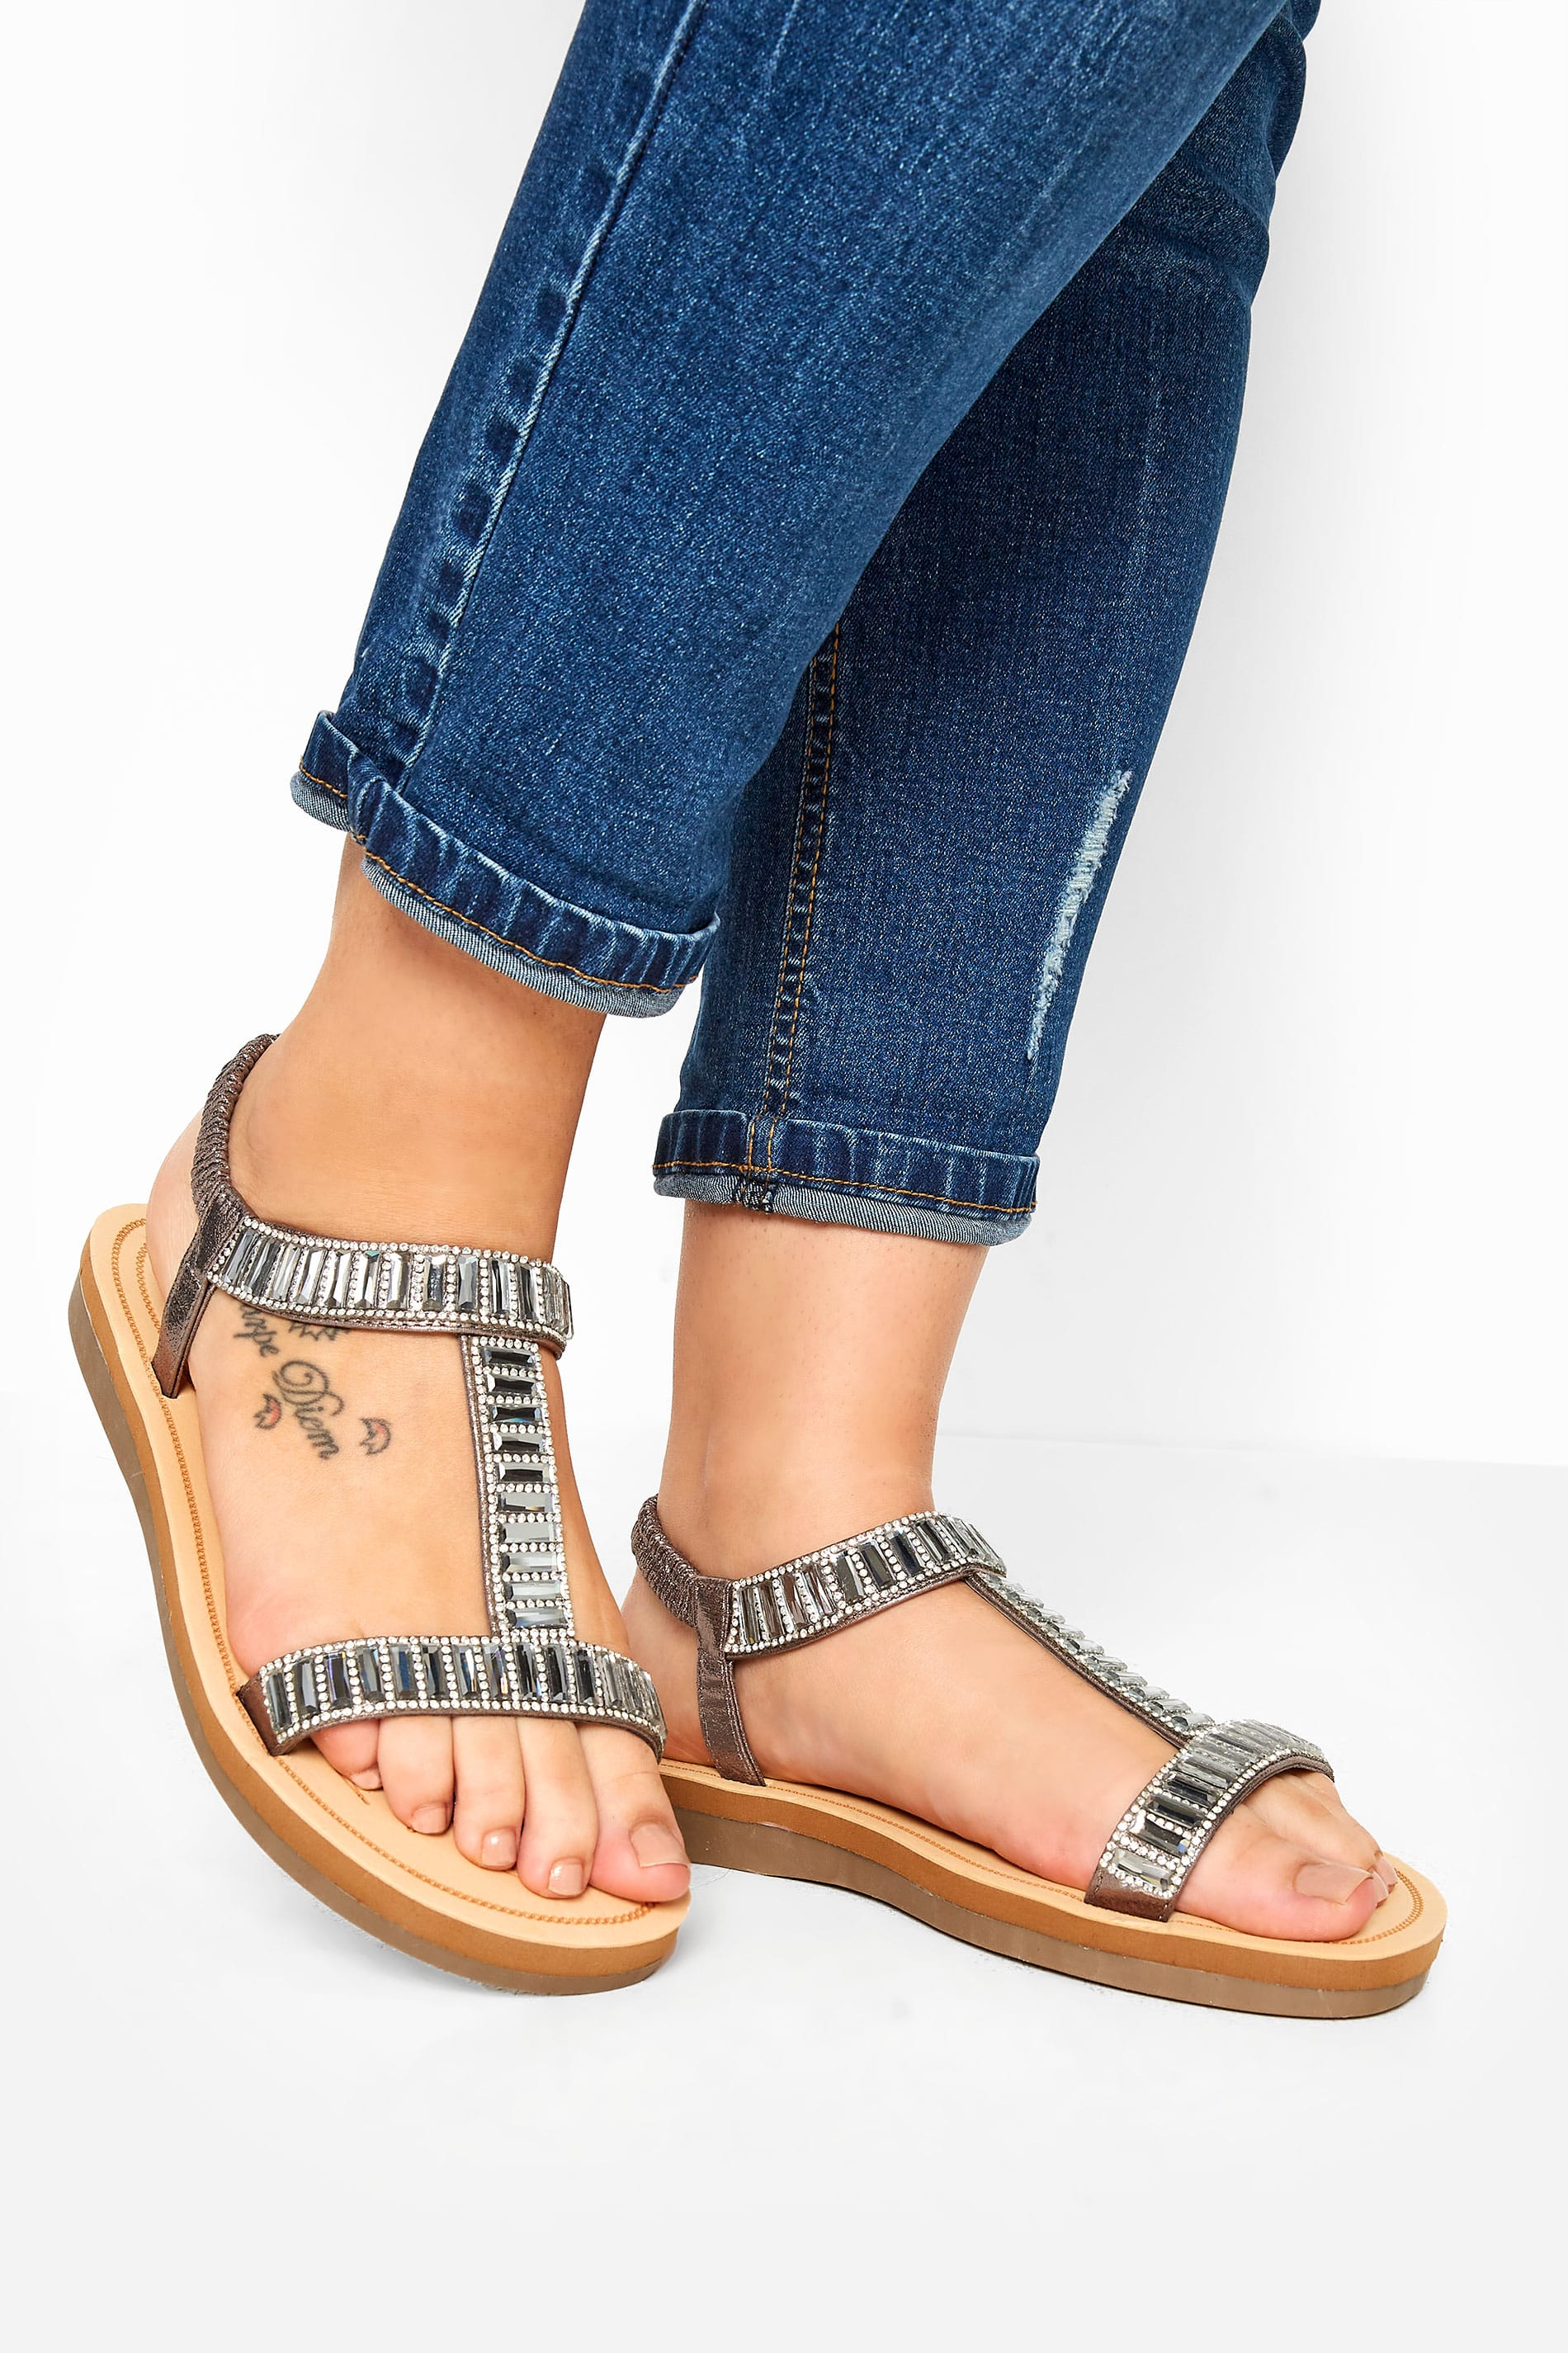 Grey Sparkle H-Band Sandals In Extra Wide Fit_475e.jpg